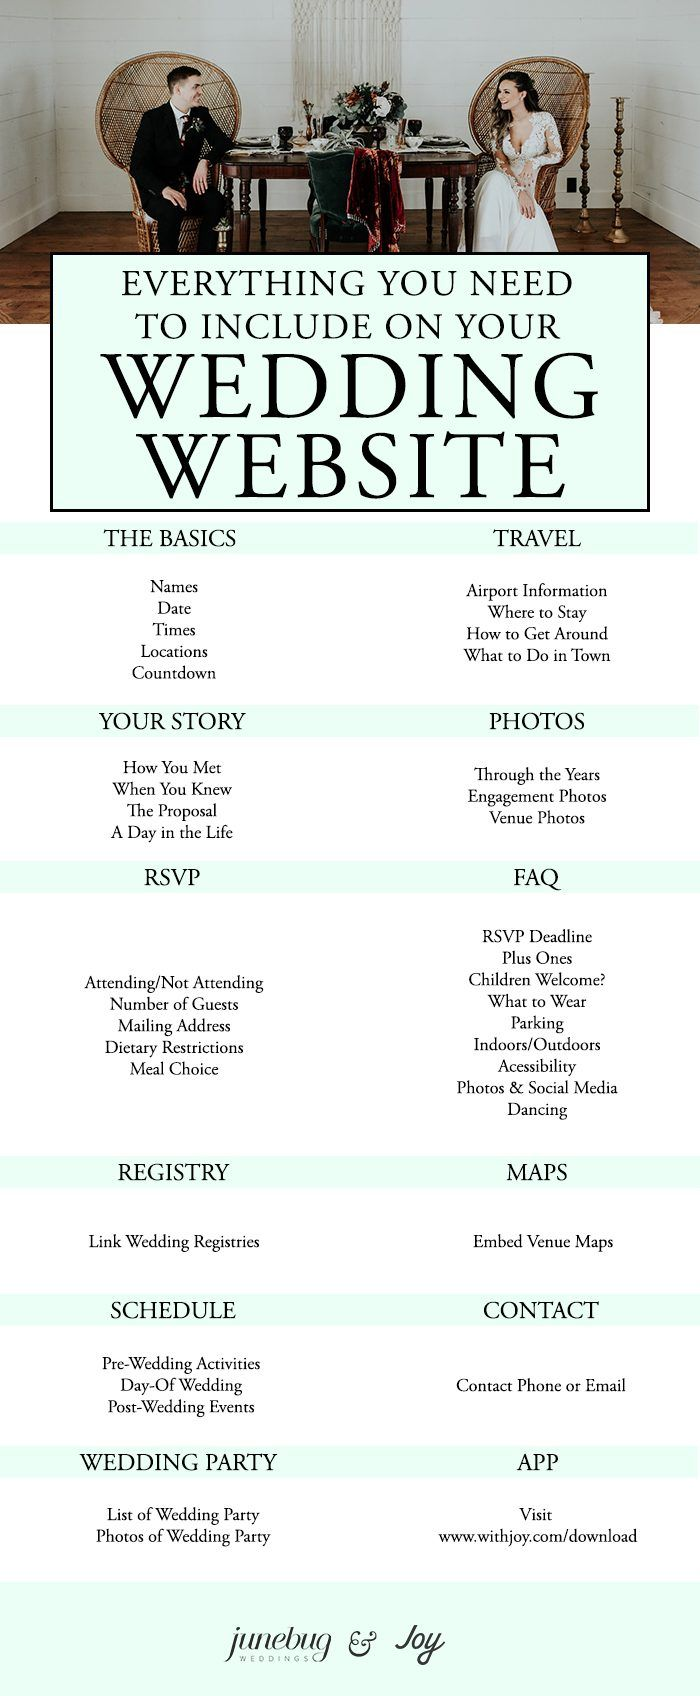 Wedding Planning Websites.This Checklist Has Everything You Need To Include On Your